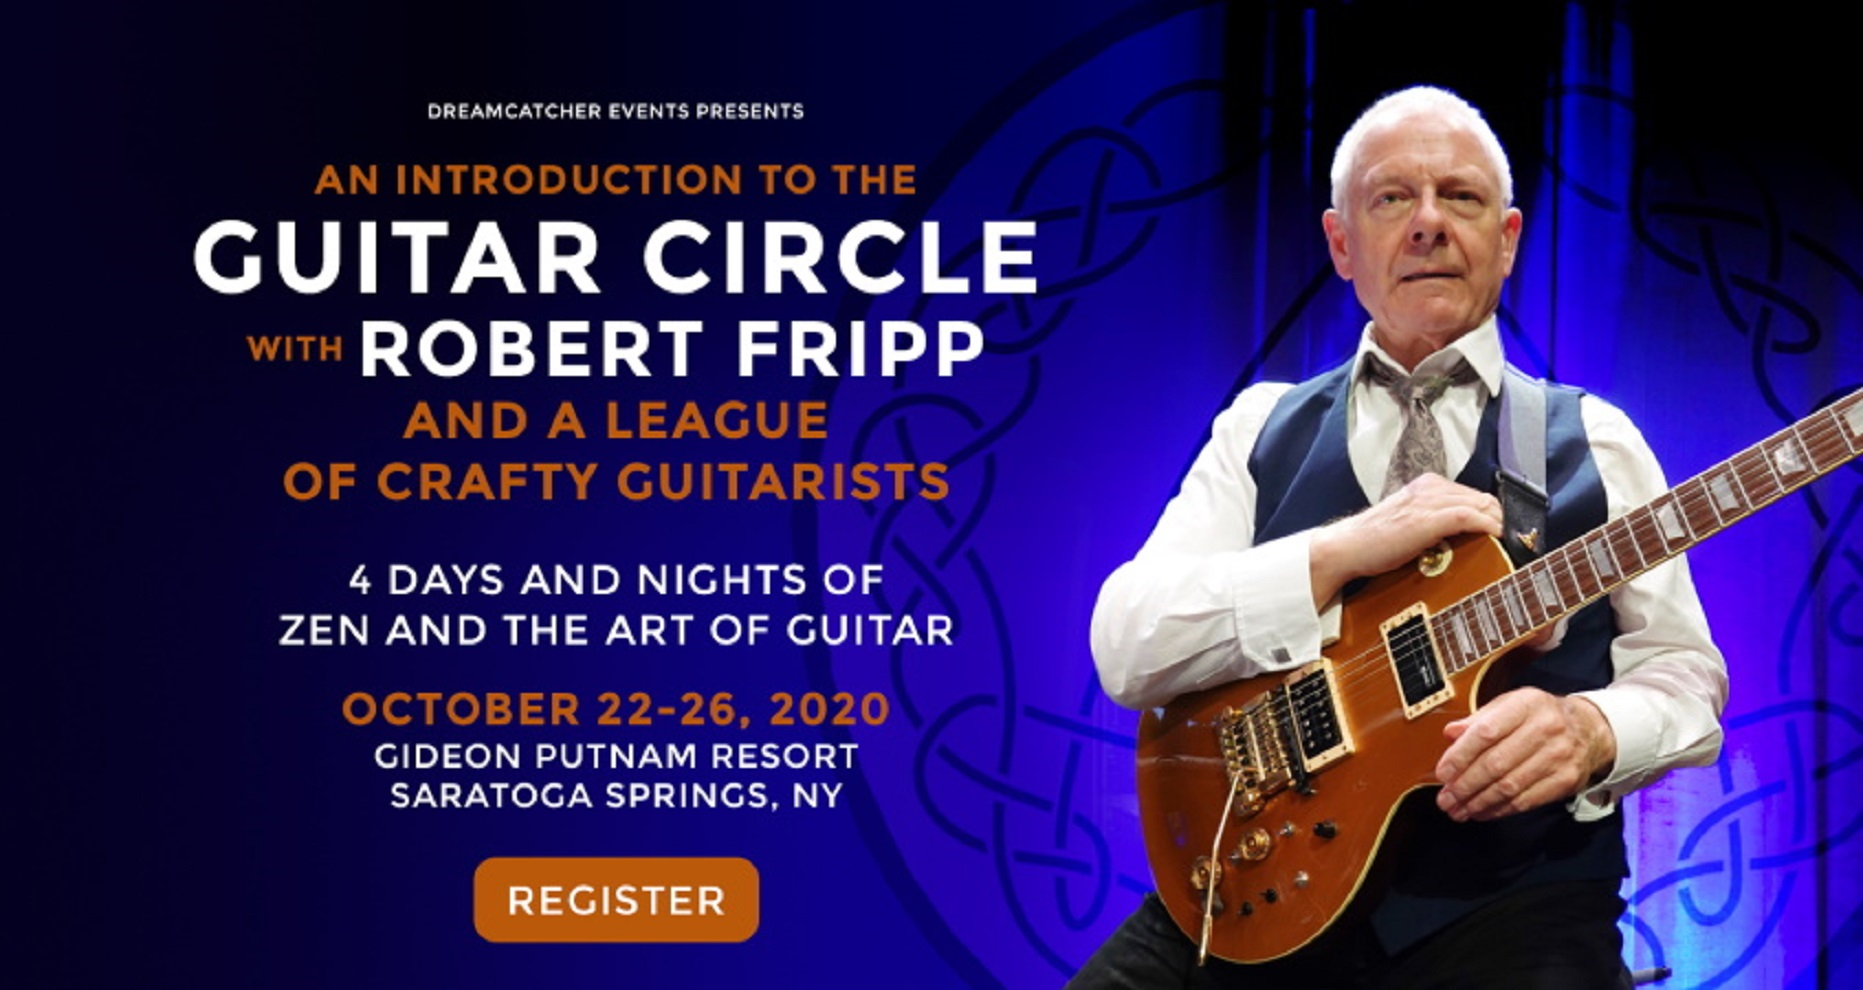 Robert Fripp's Introduction To The Guitar Circle Four-Day-Long Event